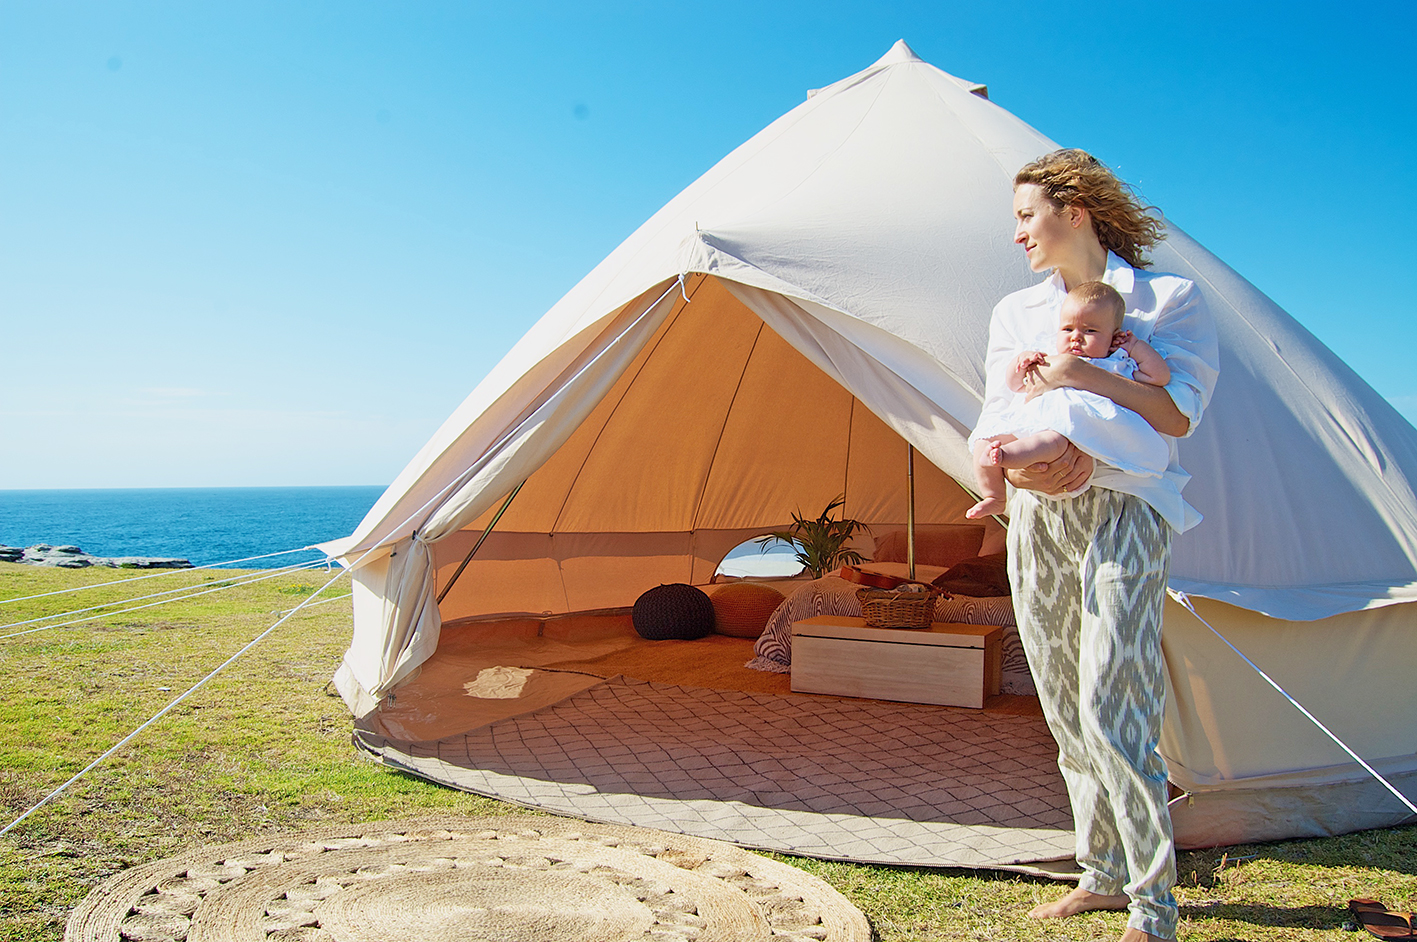 Breathe Bell Tents Australia & Roughing it in style - Breathe Bell Tents Australia -